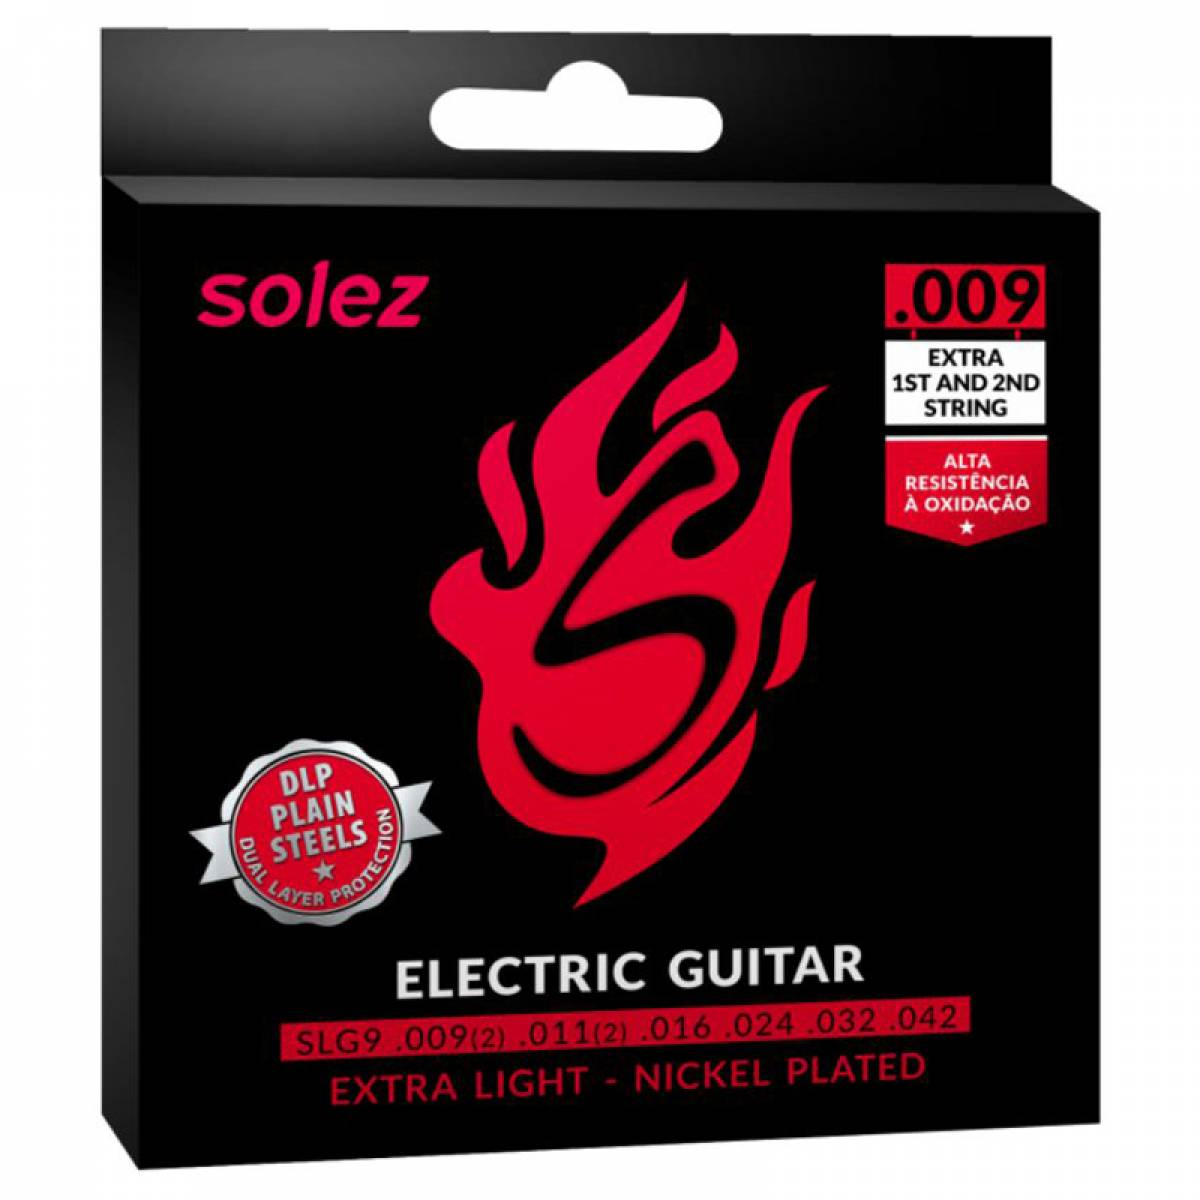 Encordoamento para Guitarra Solez .009 SLG9 EXL Nickel